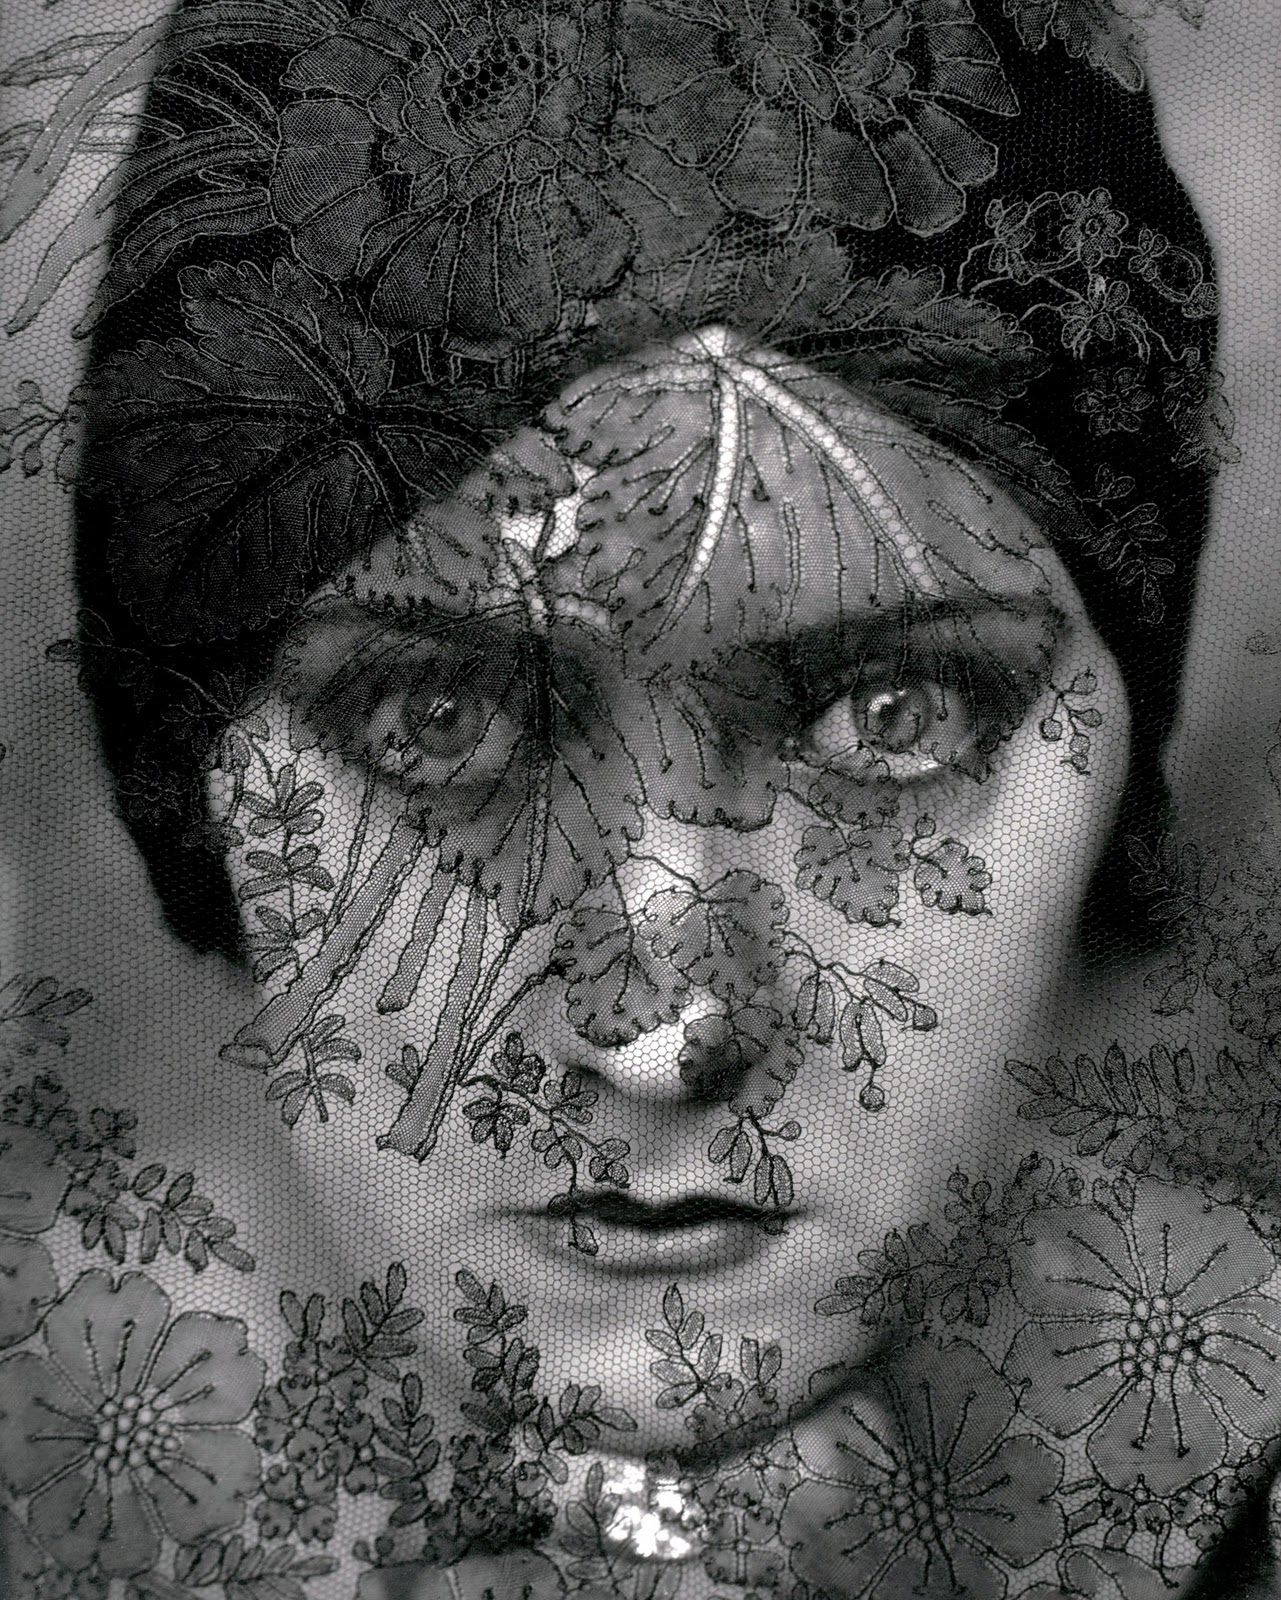 gloria swanson, photographed by edward steichen in 1924